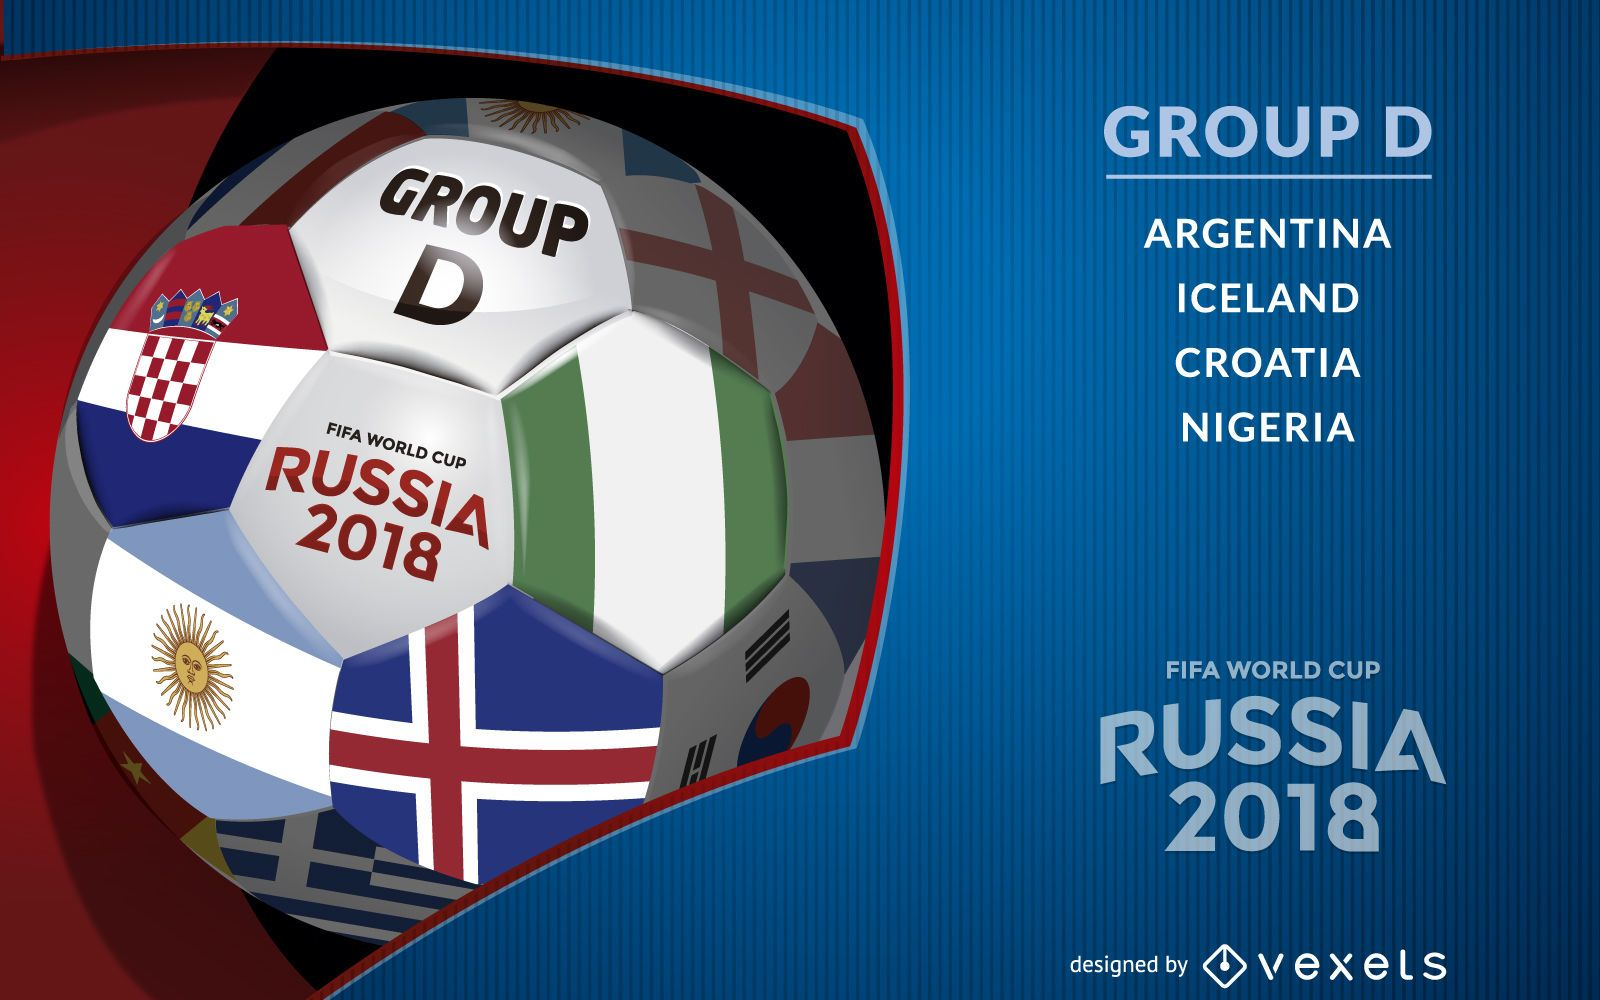 Russia 2018 Group D design